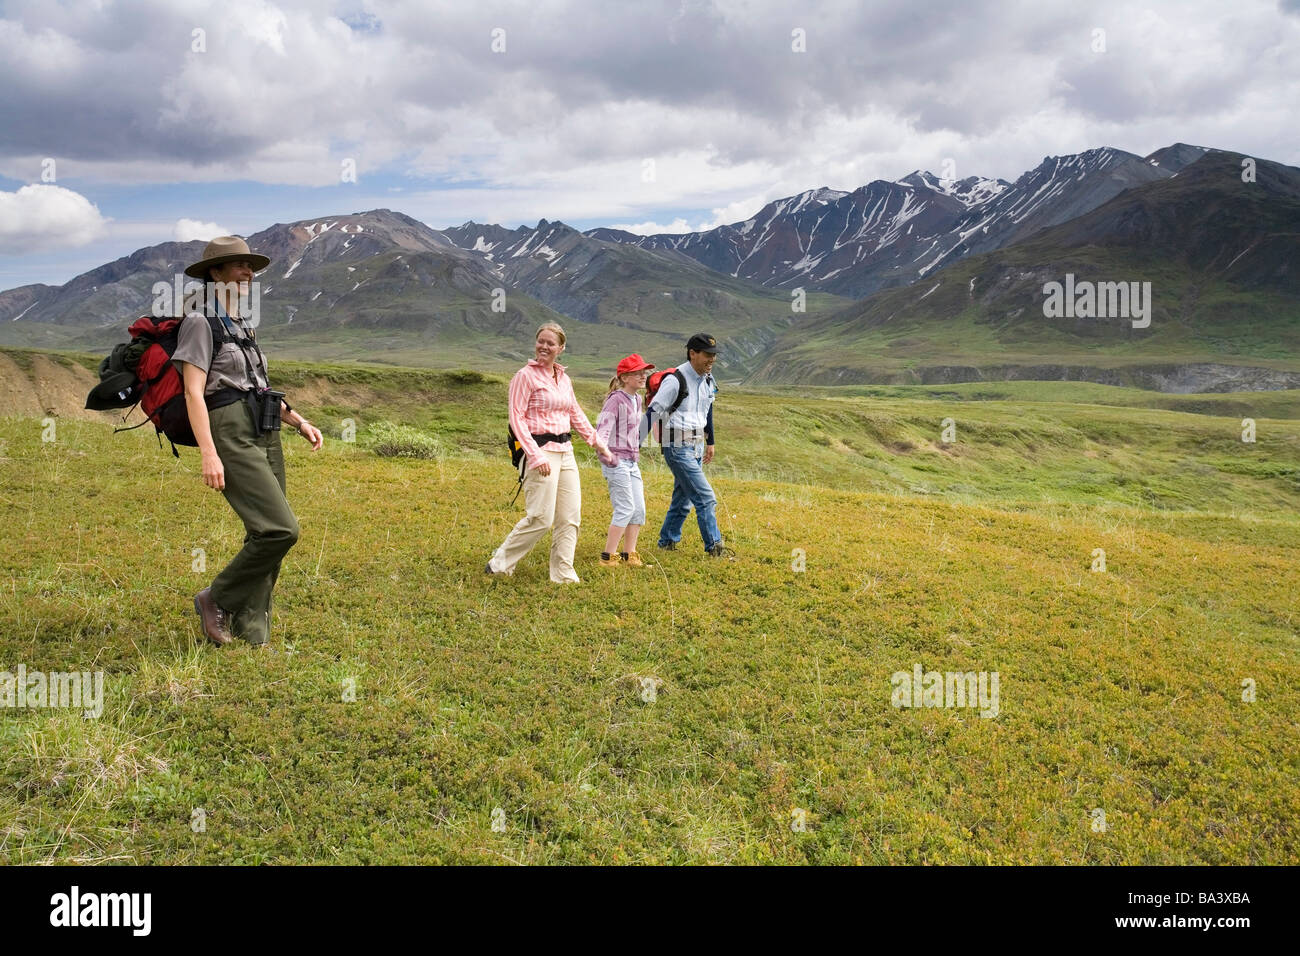 Female National Park Interpretive Ranger leads group on a *discovery hike* in the Eielson area Denali National Park Stock Photo